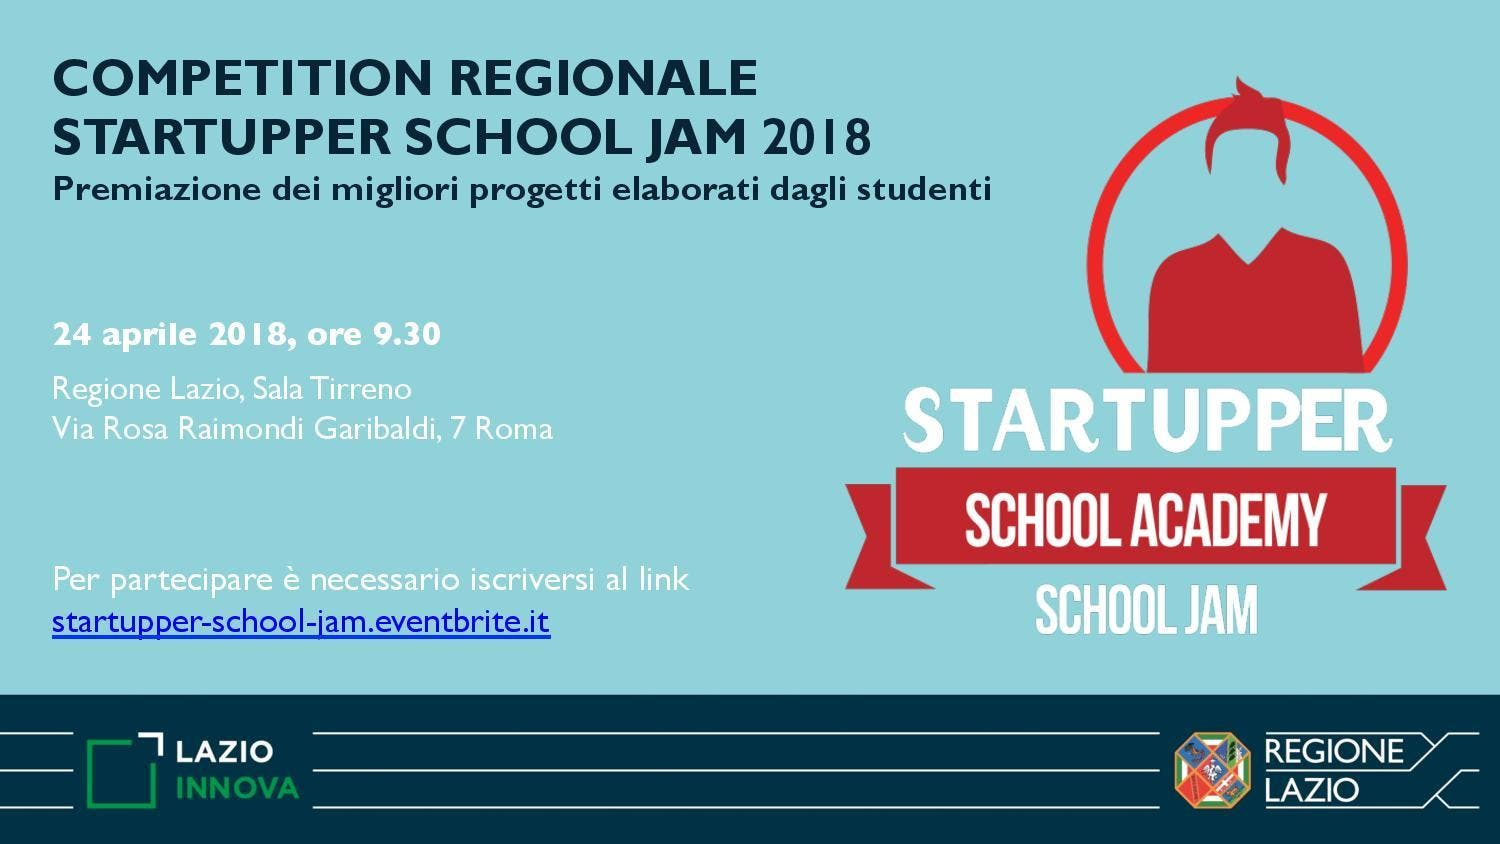 Startupper School Jam